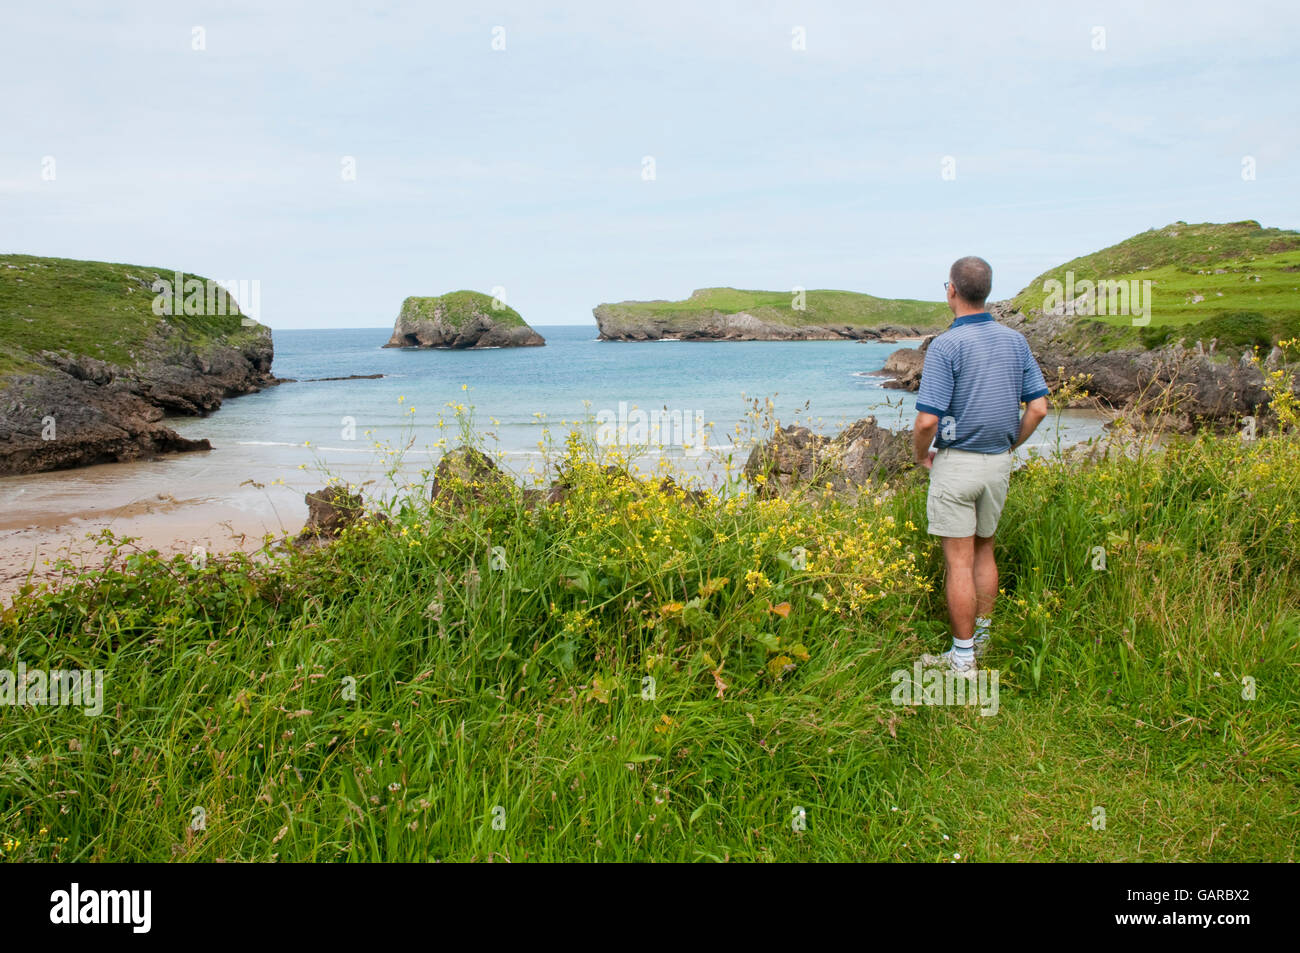 Man looking at Borizu beach from a hill. Barro, Asturias, Spain. - Stock Image